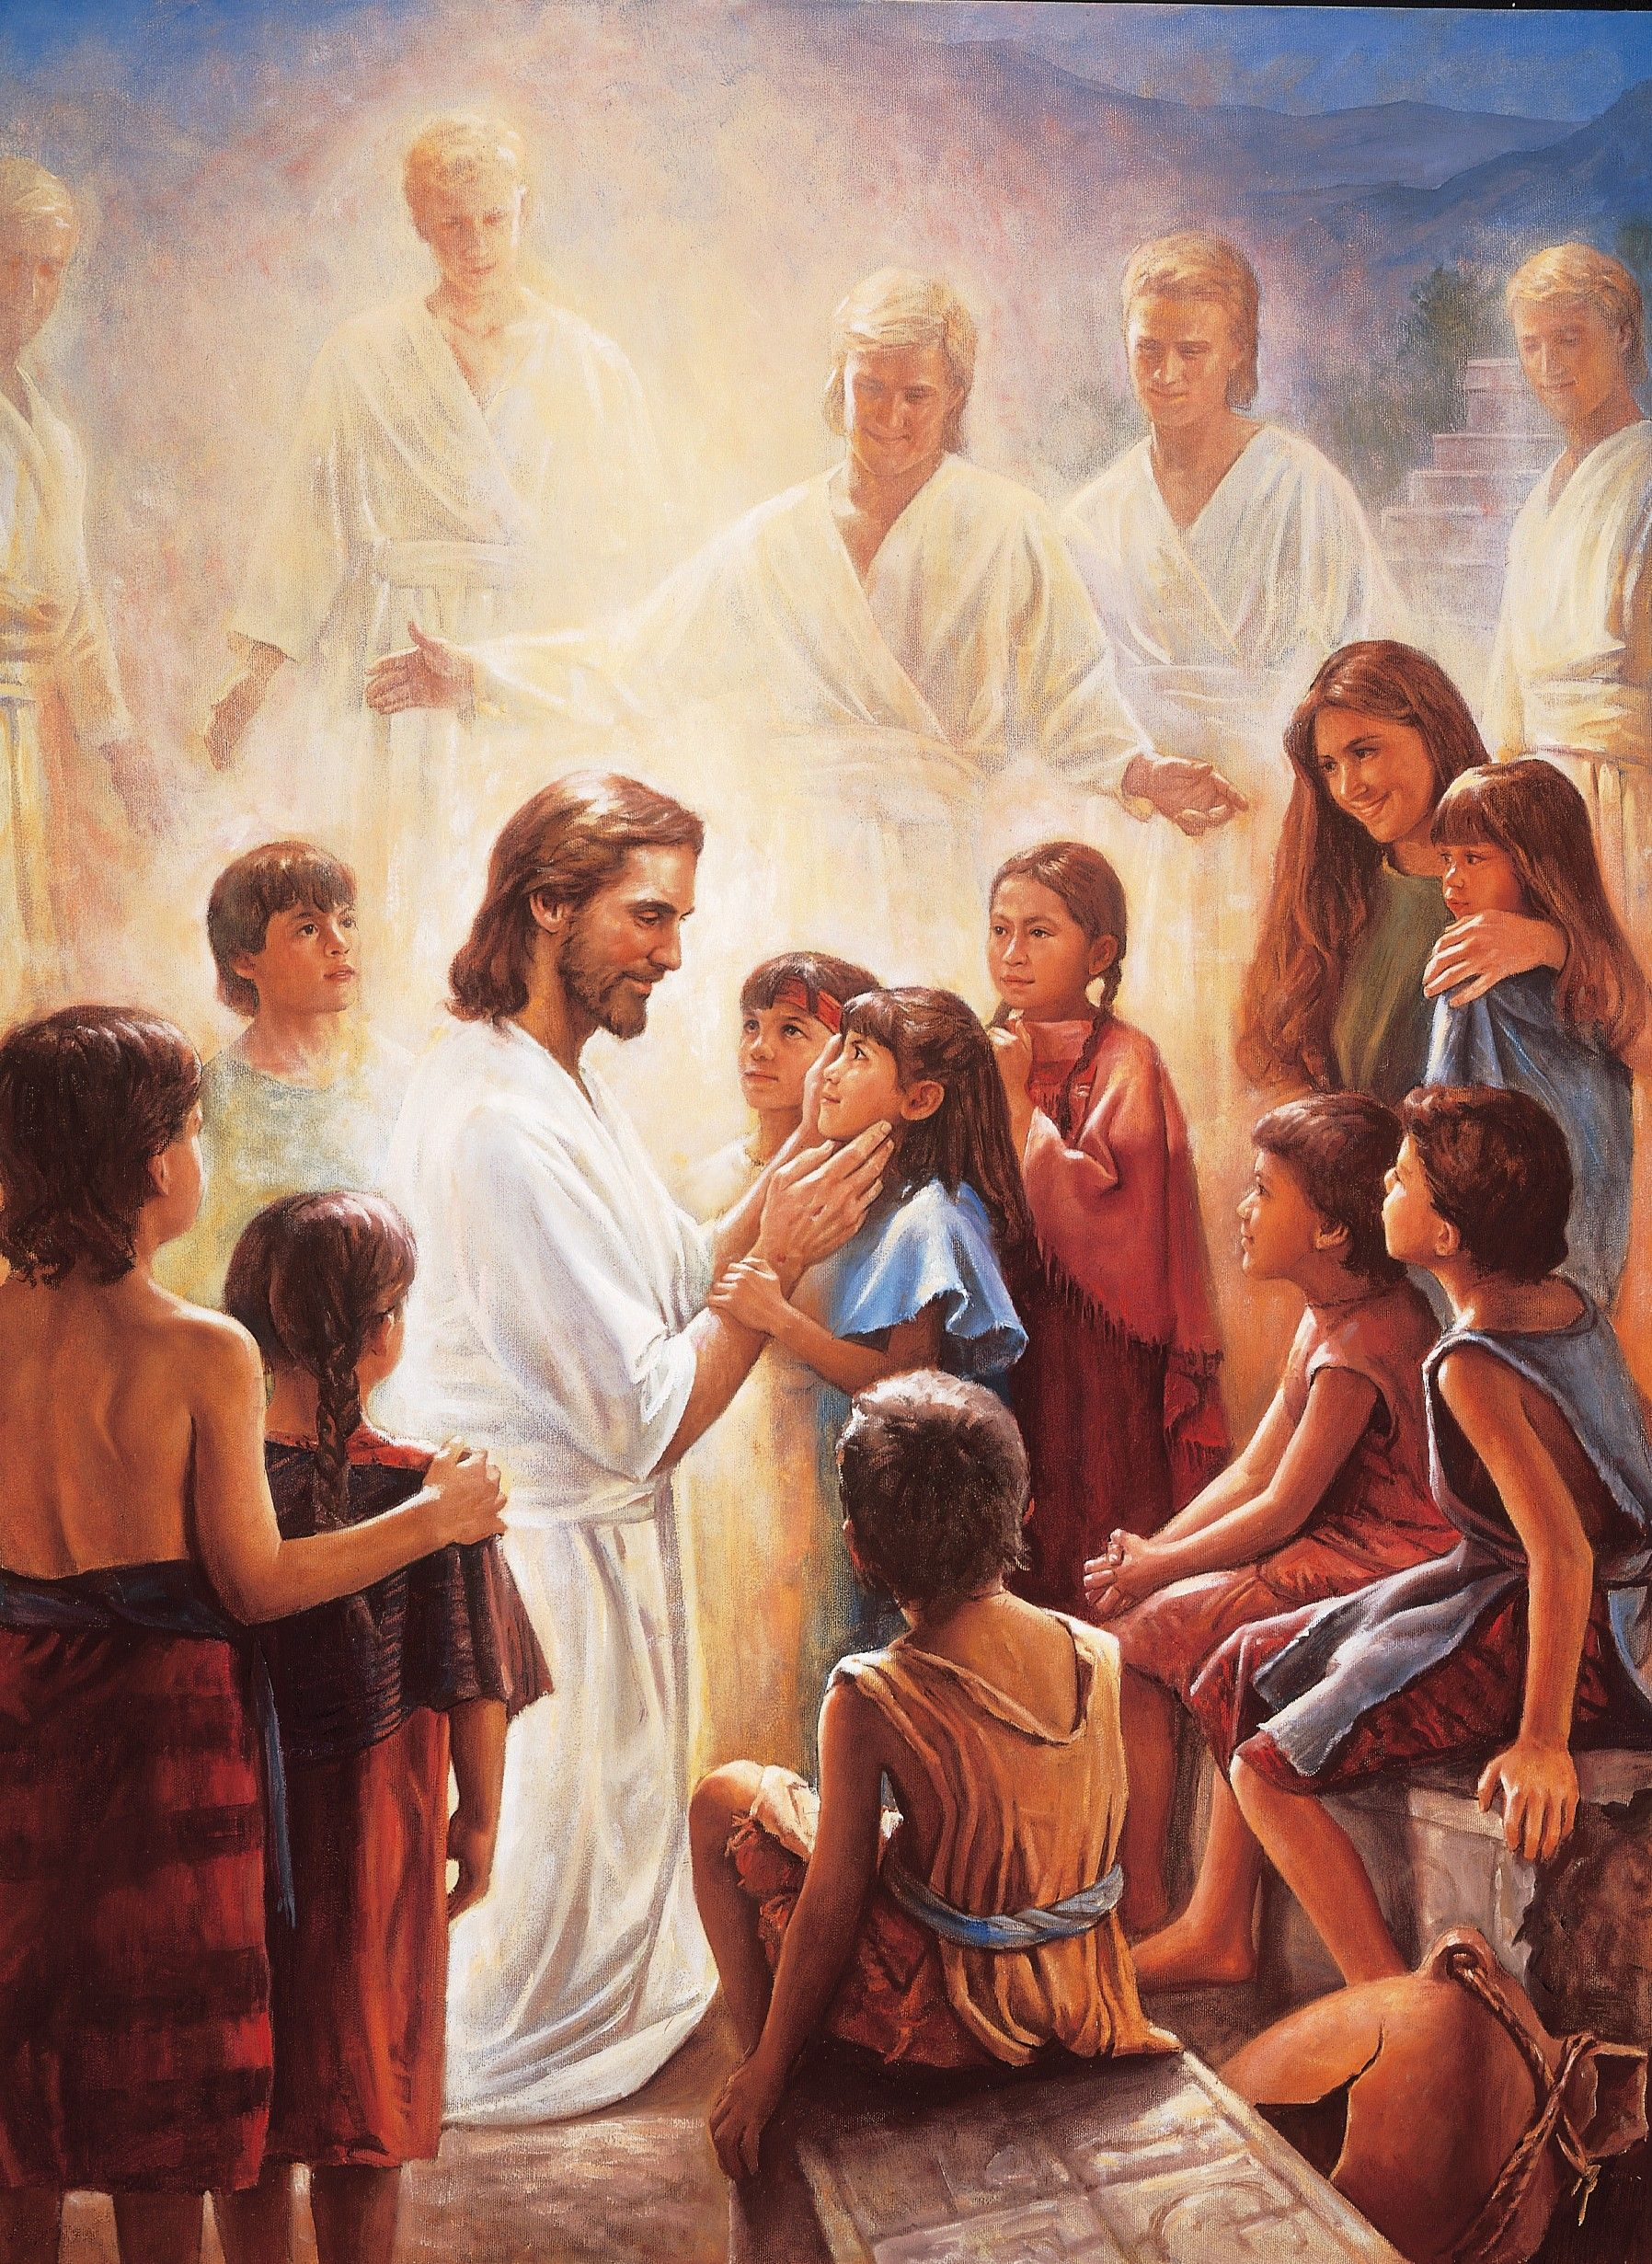 Christ and the Book of Mormon Children, by Del Parson; GAB 84; nursery manual Behold Your Little Ones (2008), lesson 4, page 22; 3 Nephi 17:11–25 This image is to be used for Church purposes only.